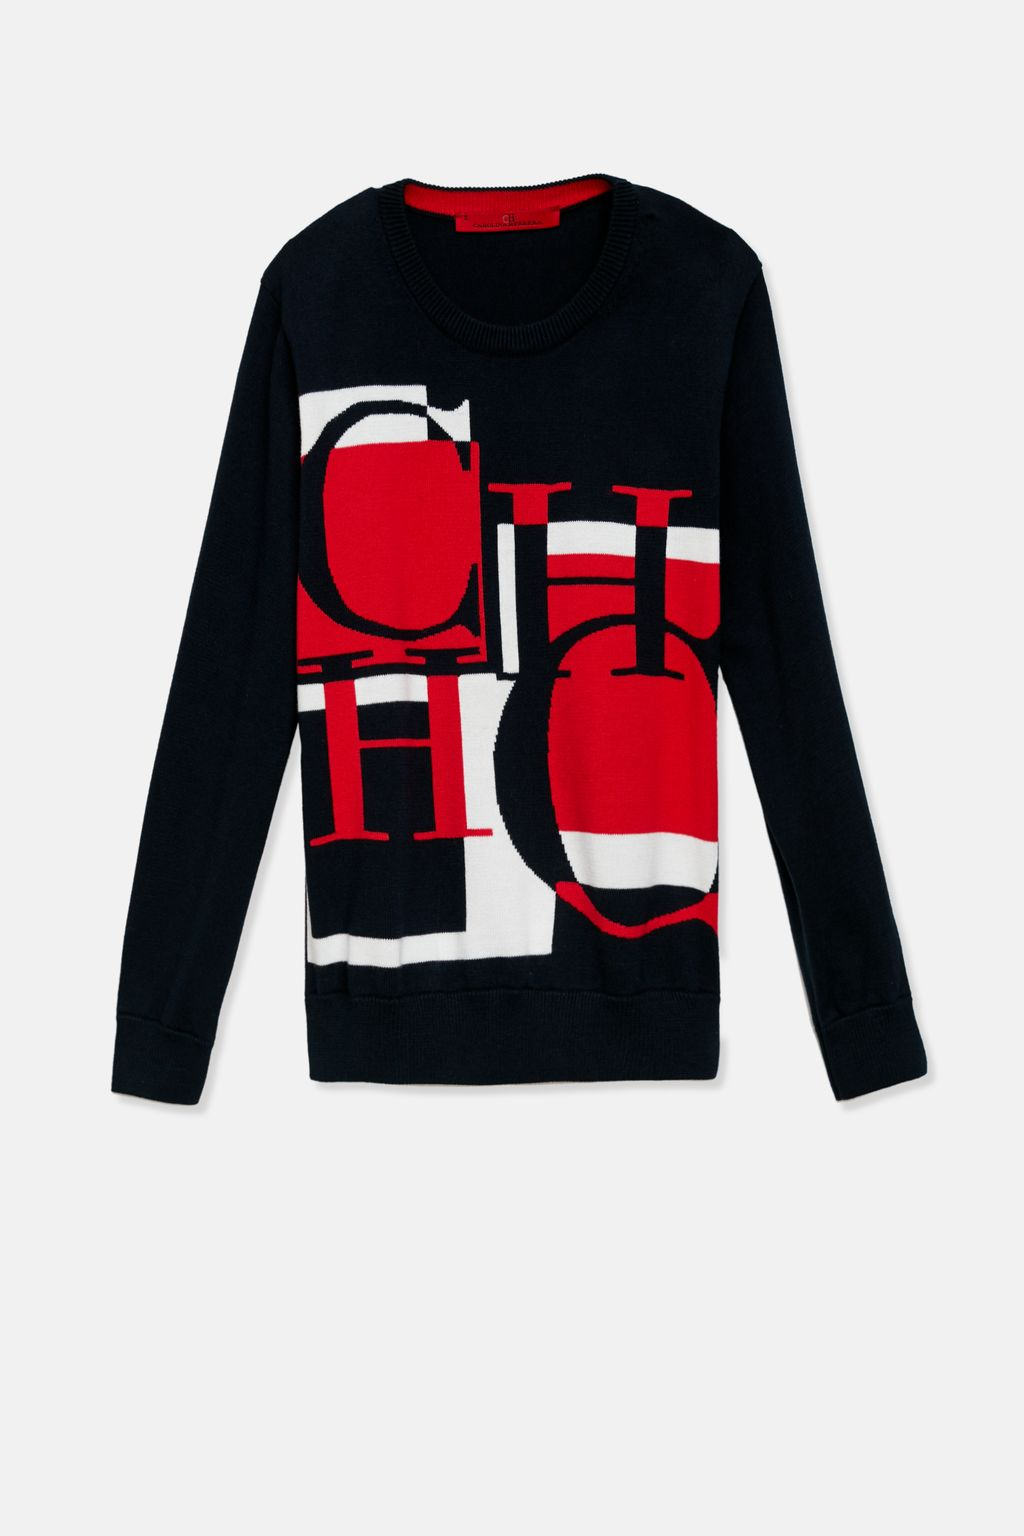 CH intarsia knitted sweater